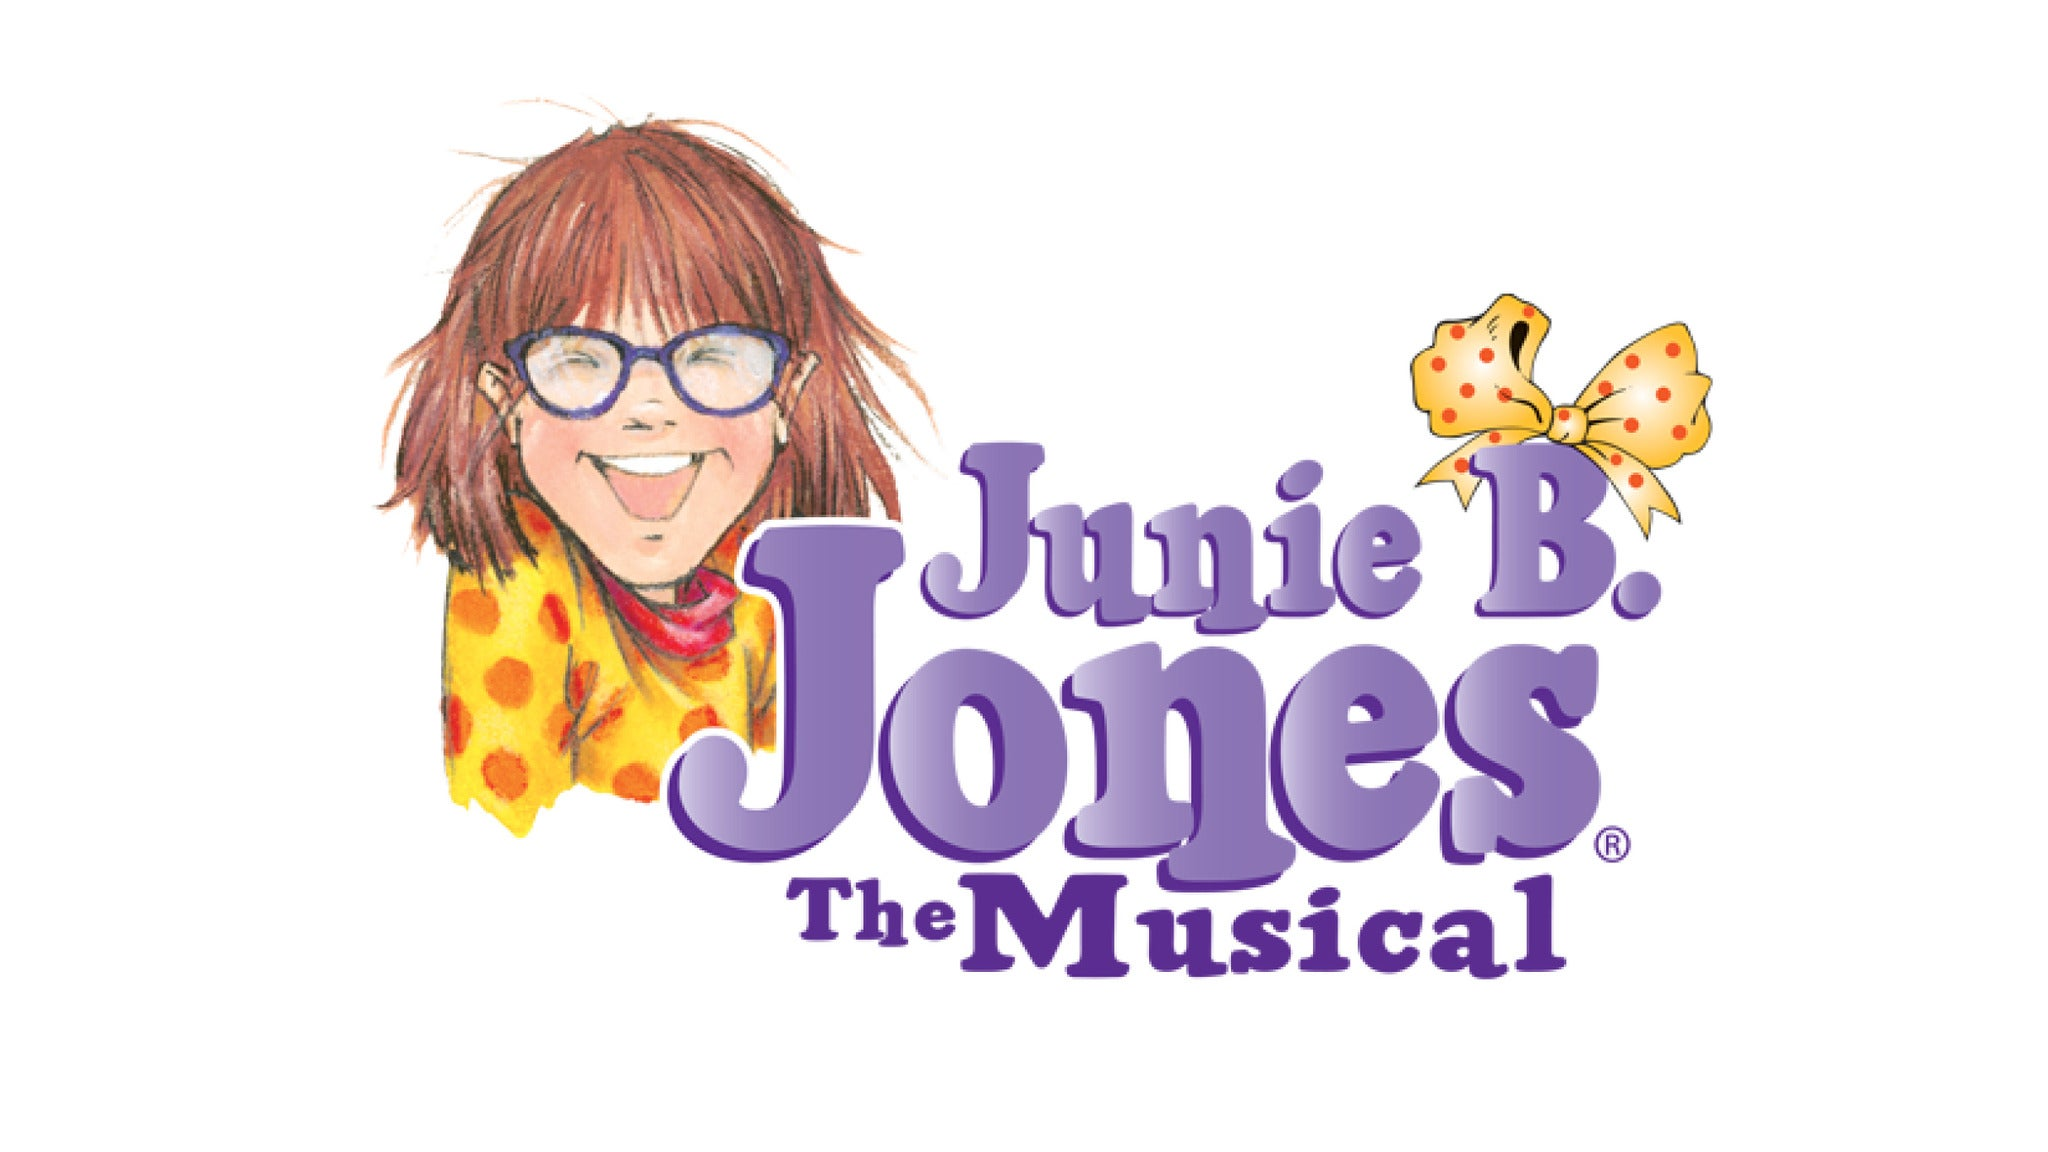 Junie B. Jones at City Theatre - Detroit, MI 48201